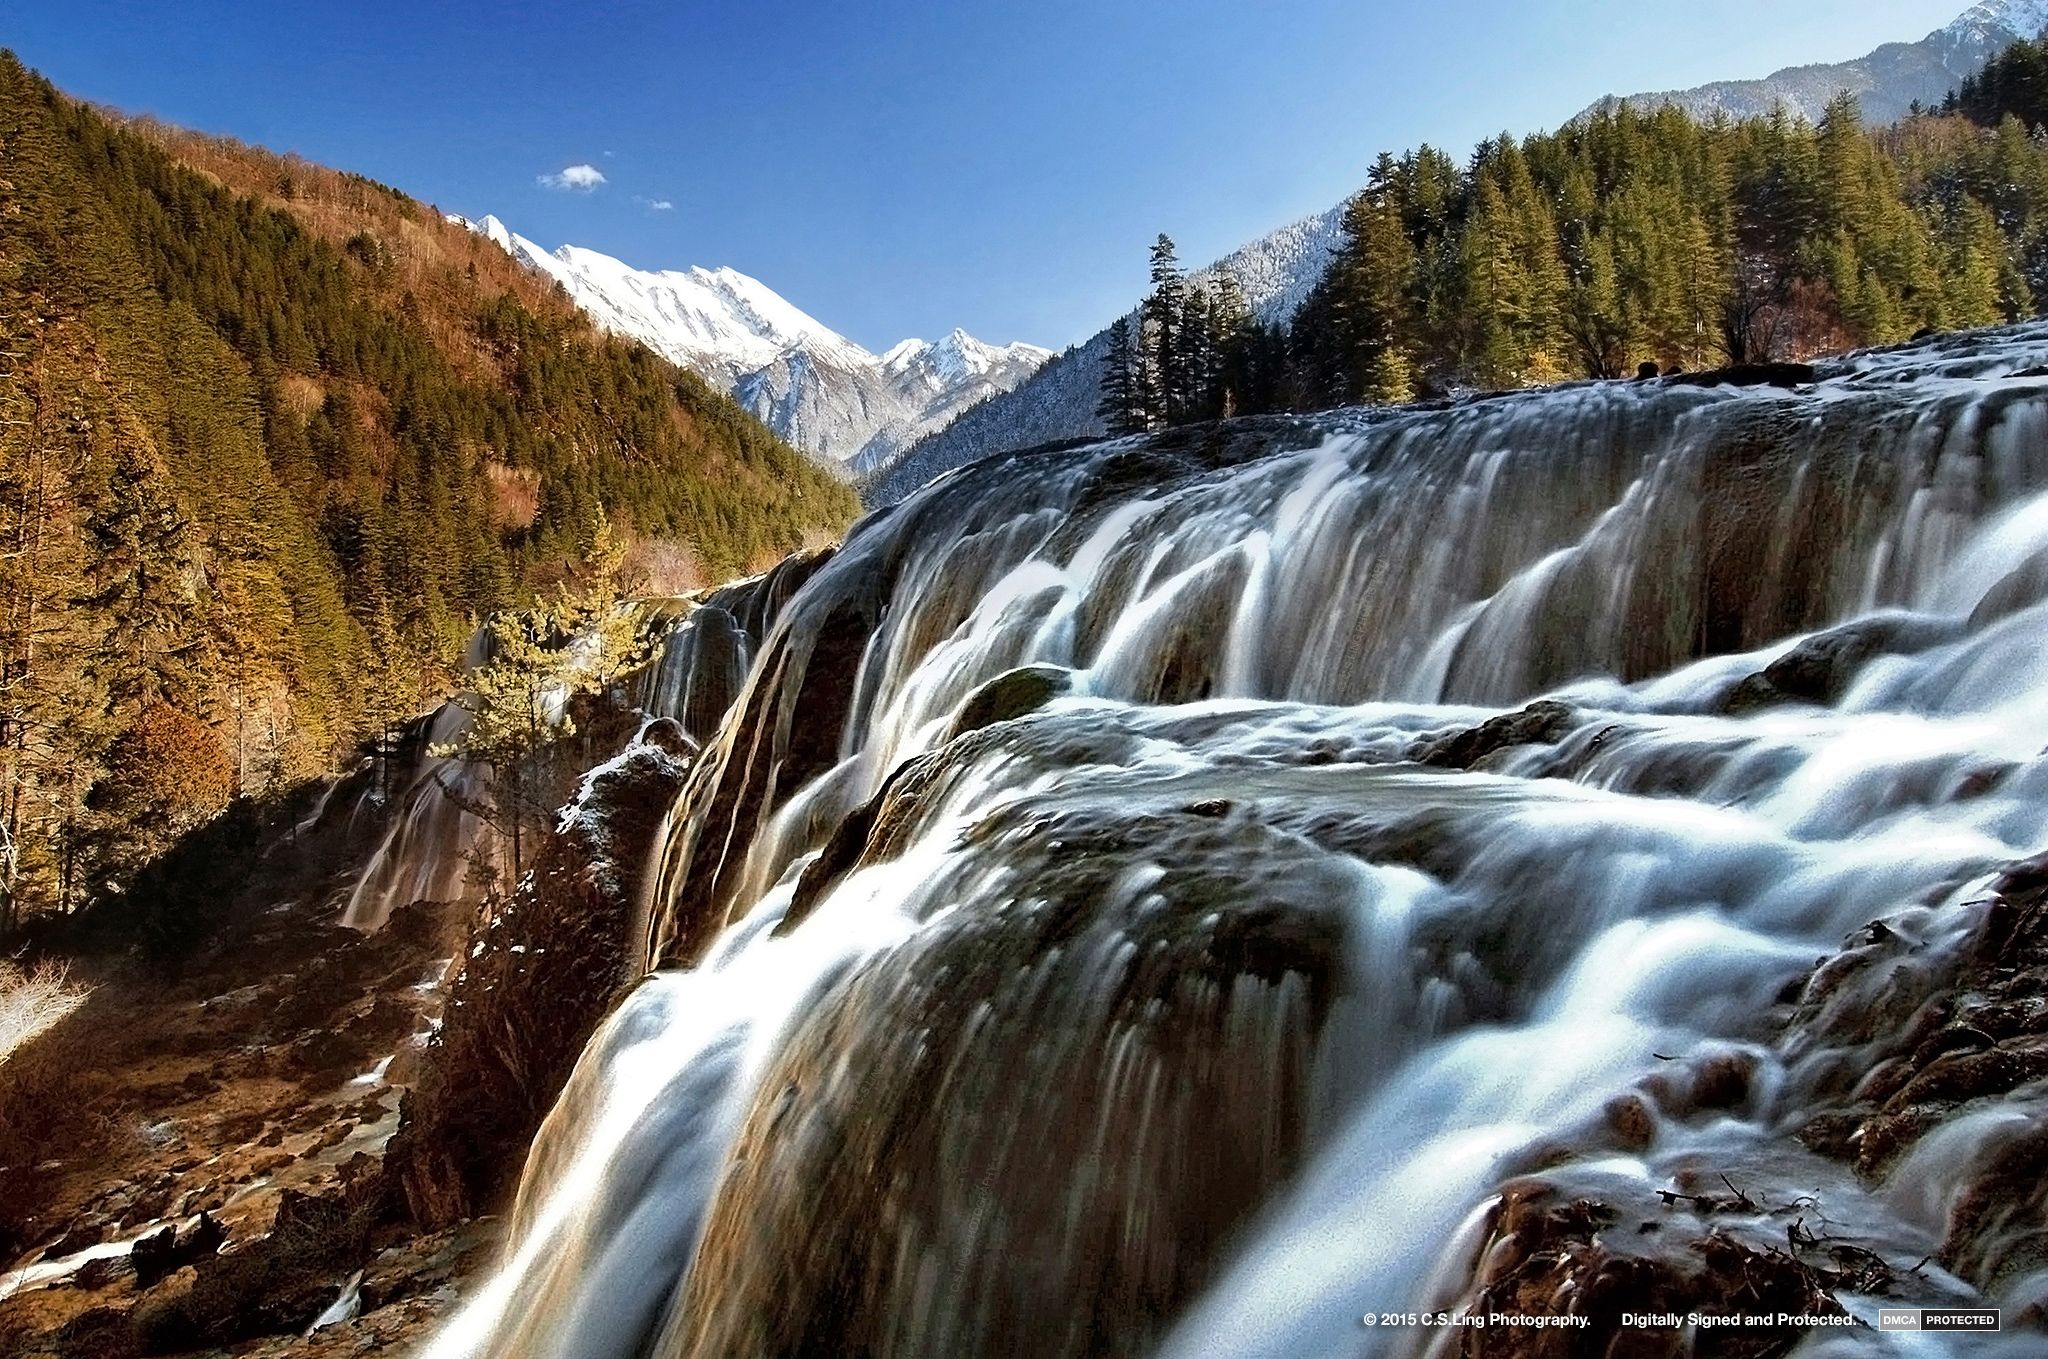 Waterfall at Jiu Zhai Gou | Top Asia Photographer C.S.Ling